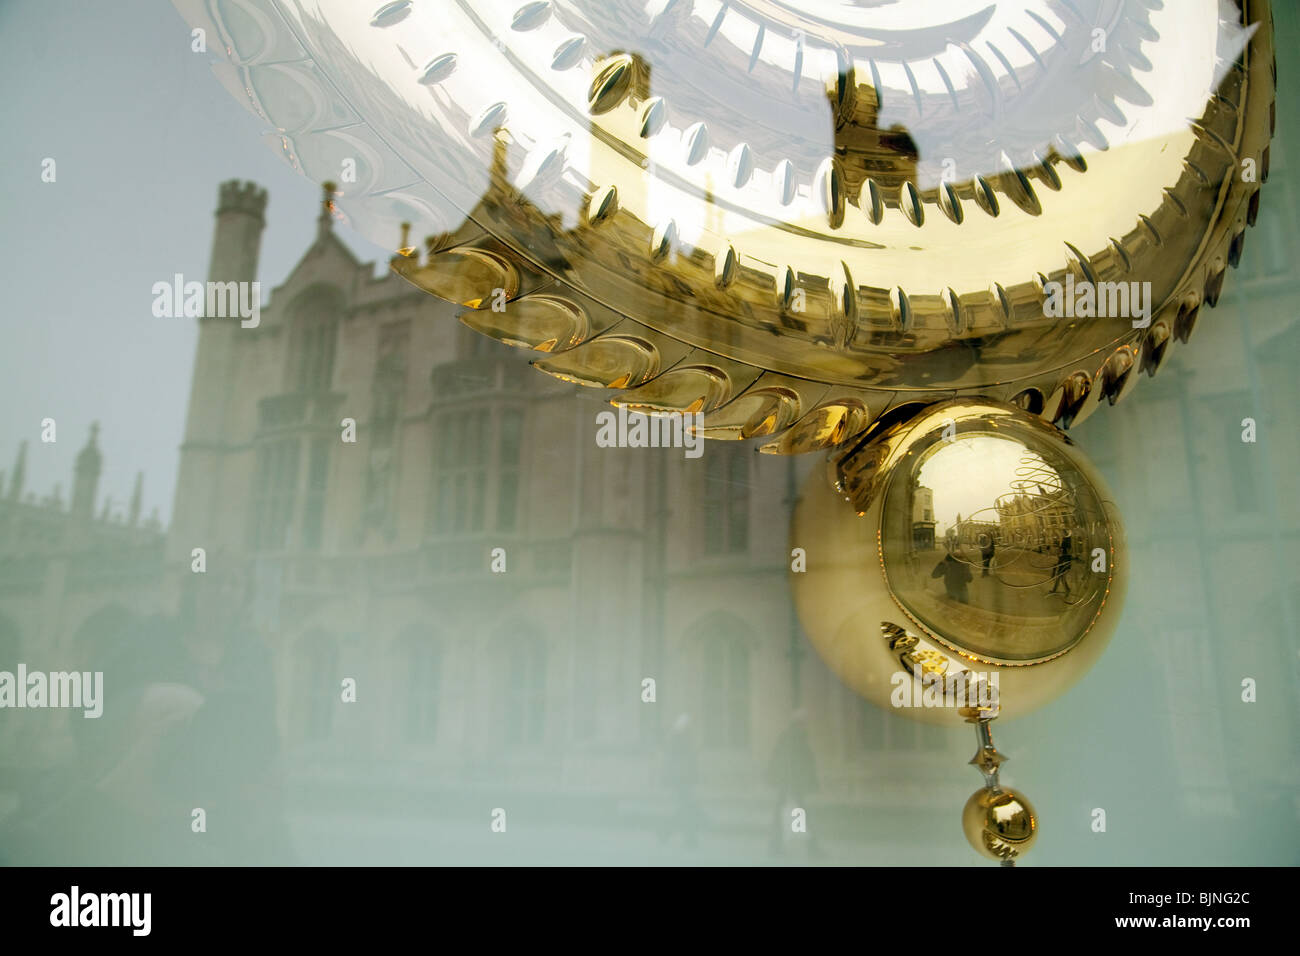 The pendulum of the Grasshopper Clock, Corpus Christi College cambridge, with Kings College reflected in the window, Stock Photo